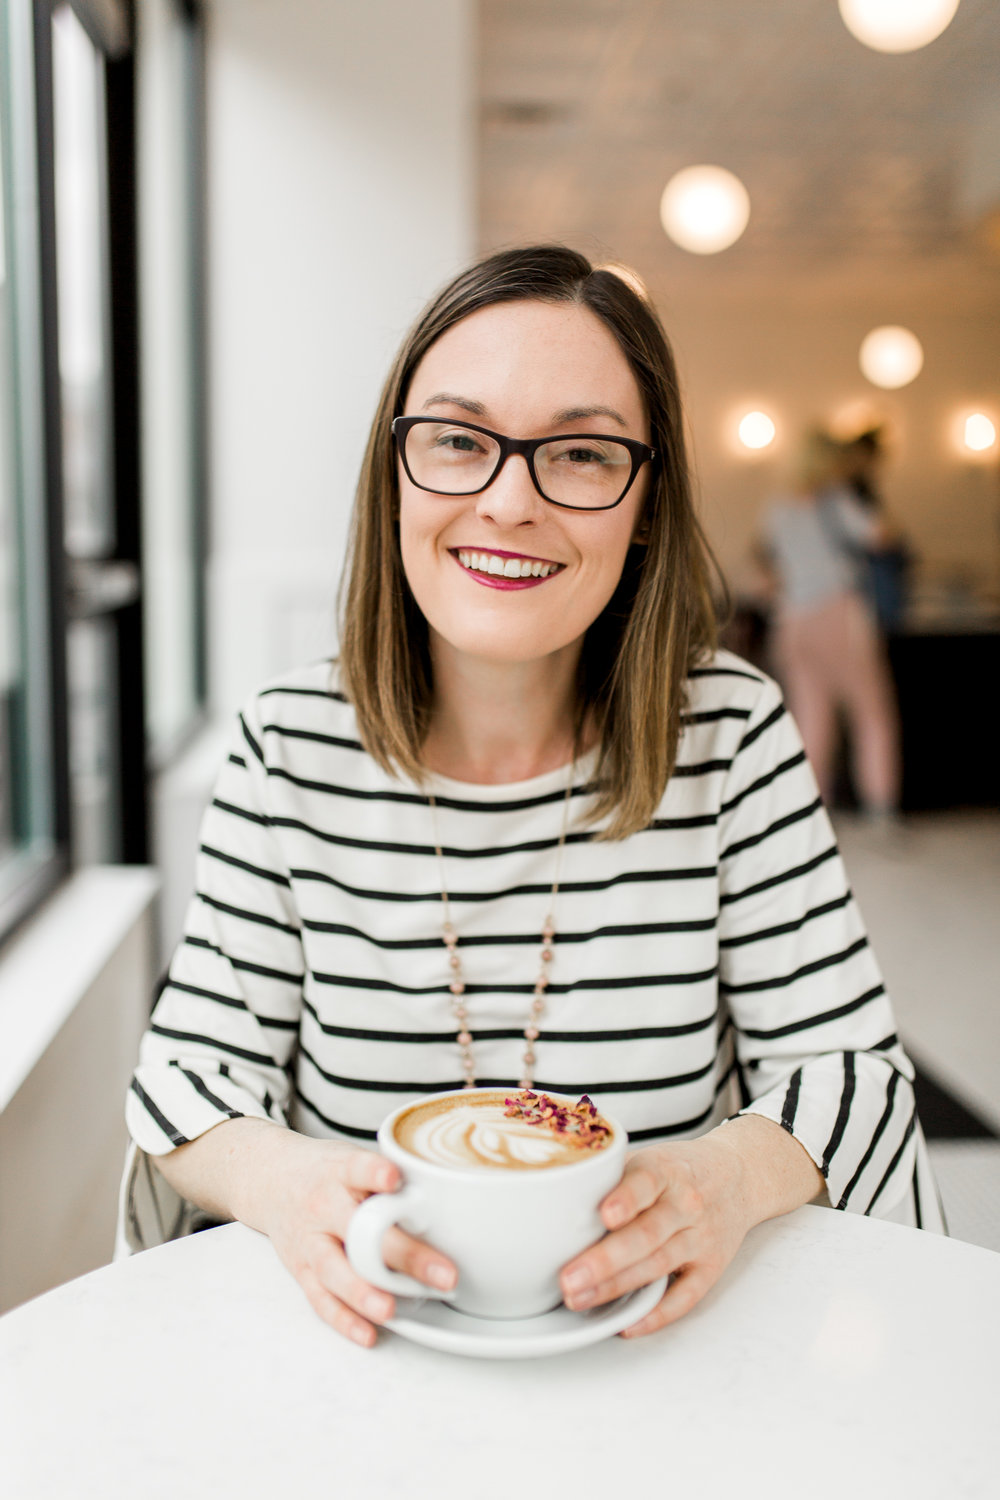 Smiling woman drinking a latte in a coffee shop, Kansas City lifestyle photographer, Kansas City senior photographer, Kansas City small business headshots, Kansas City lifestyle blogger, candid portrait, winter portrait session, Monarch Coffee